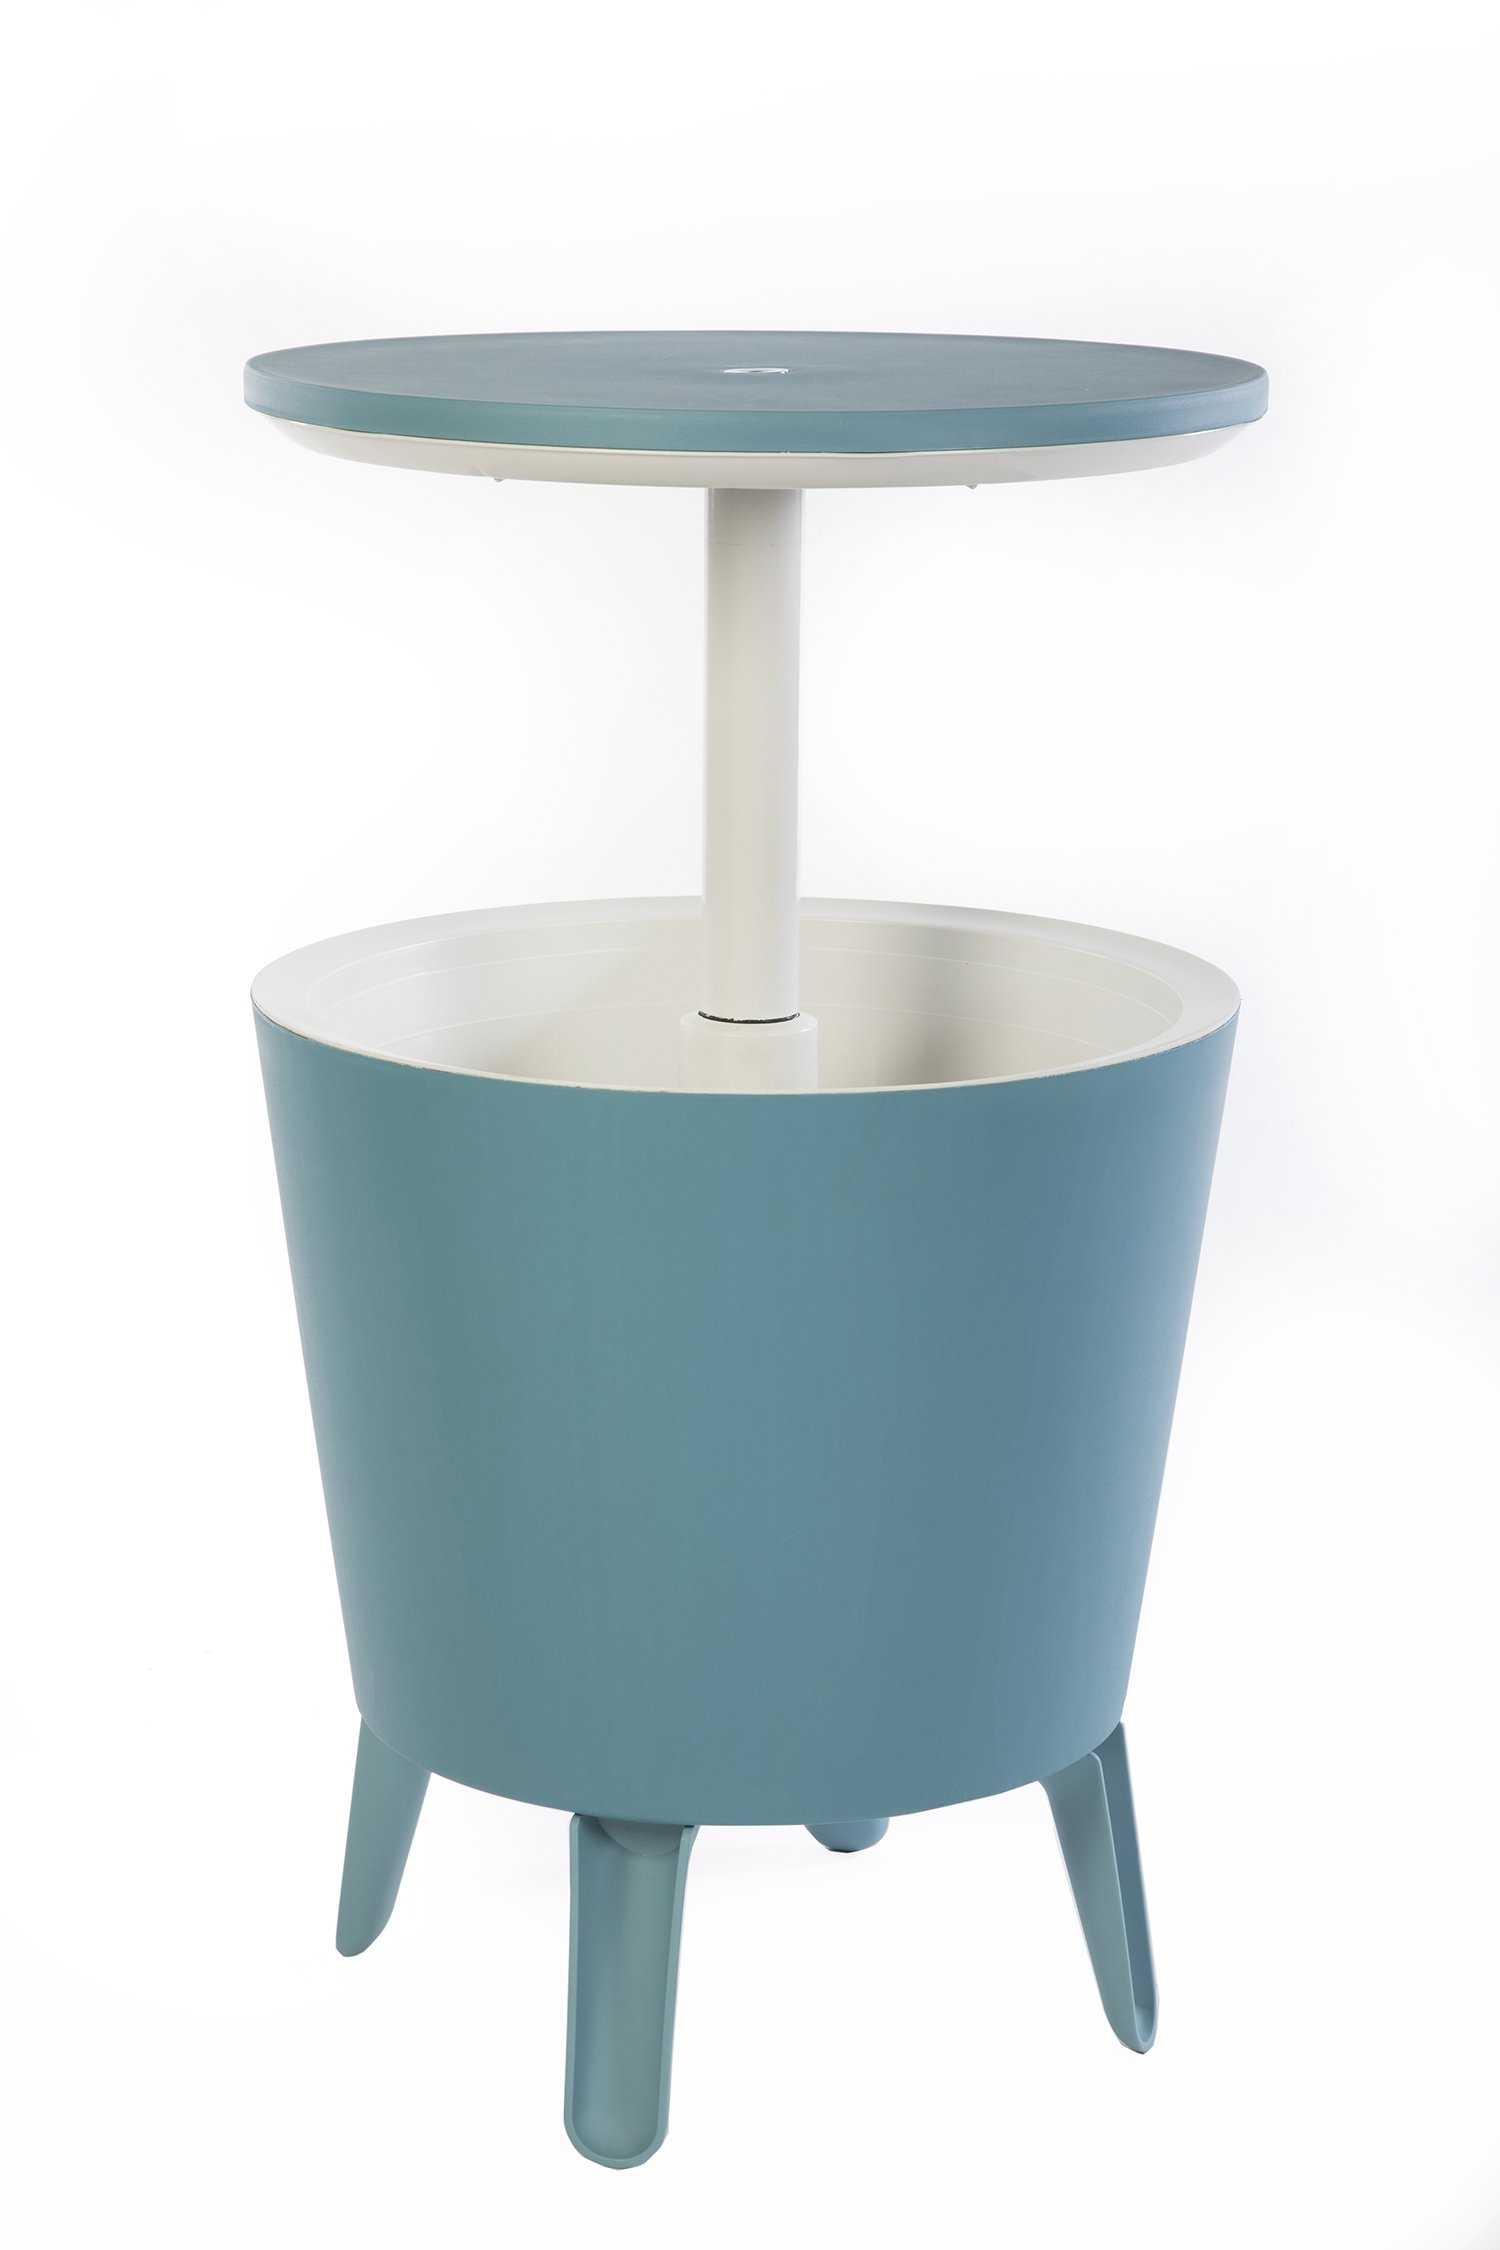 Keter 7.5-Gal Cool Bar Modern Smooth Style with Legs Outdoor Patio Pool Cooler Table, Teal by Keter